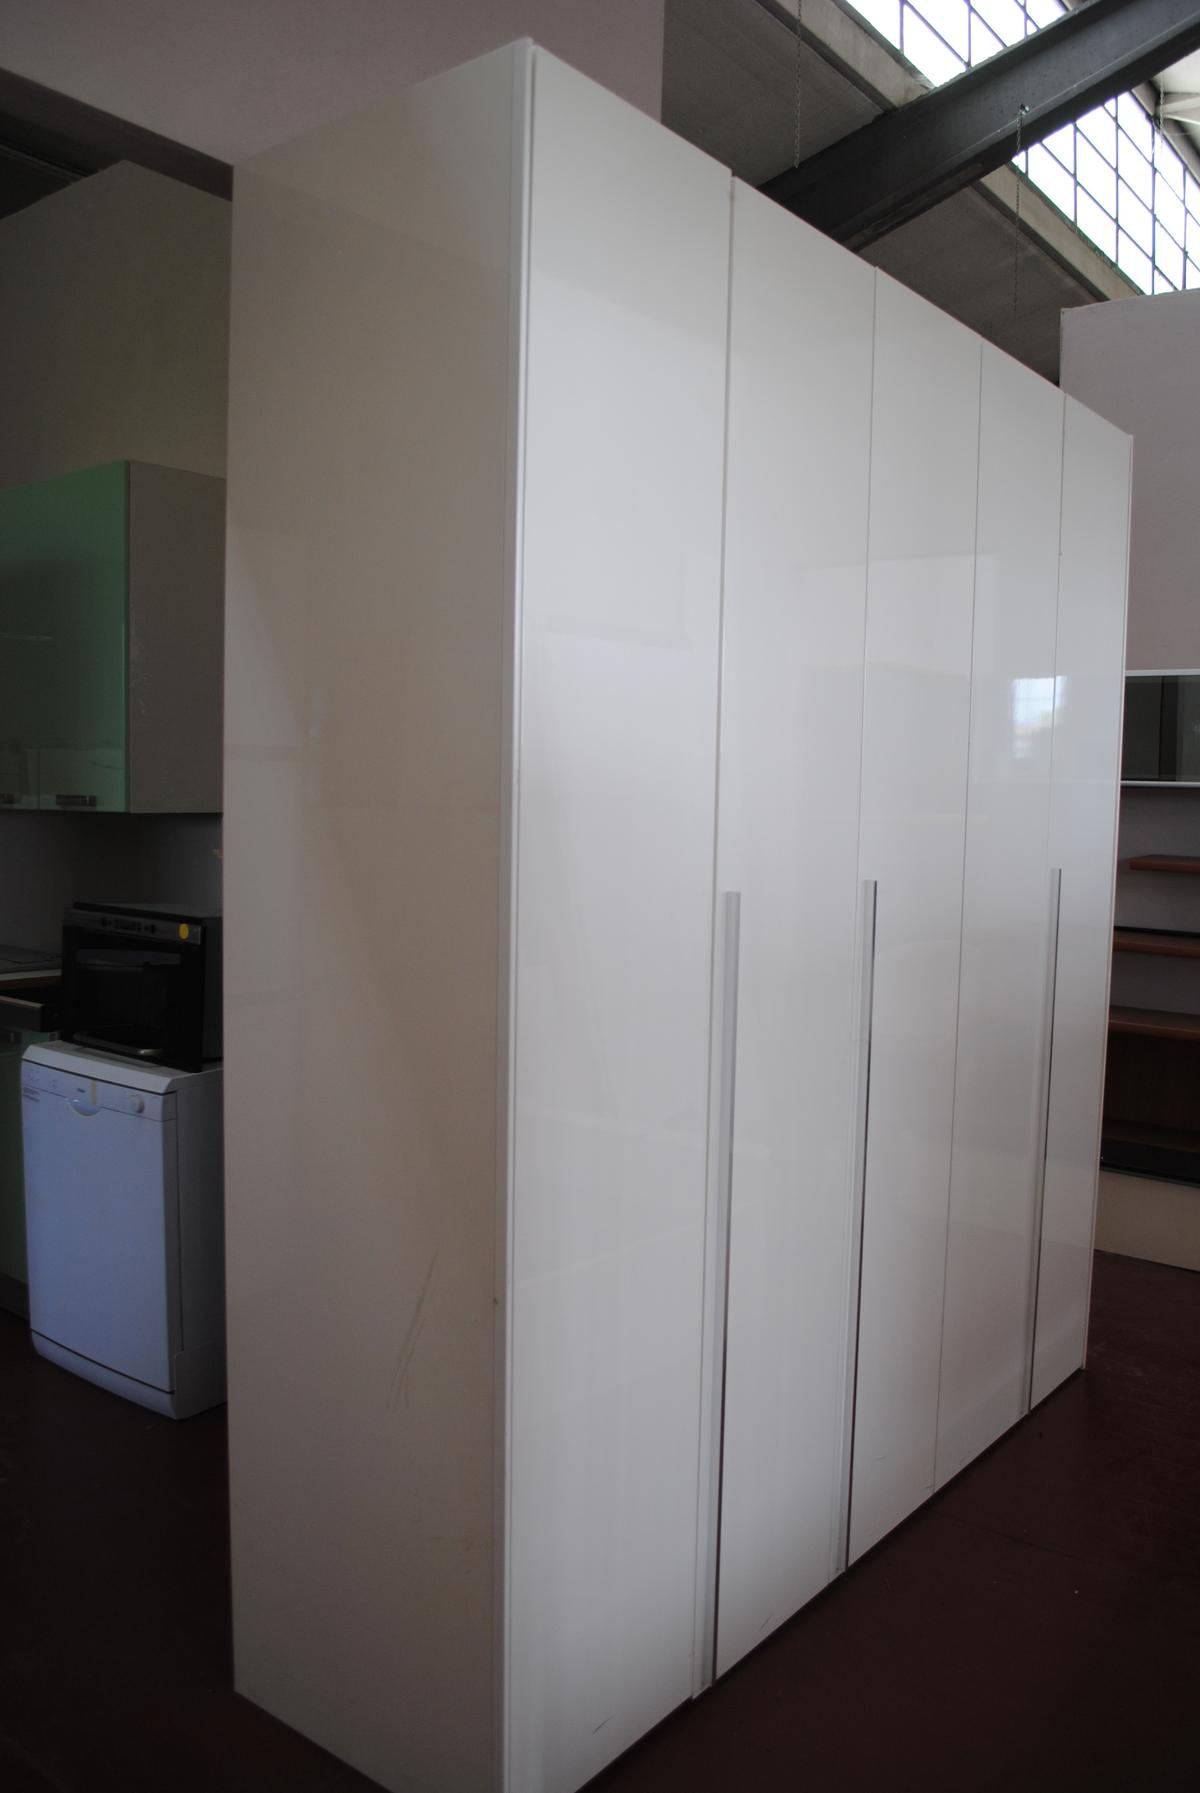 armadio laccato bianco in Milano for €150.00 for sale - Shpock